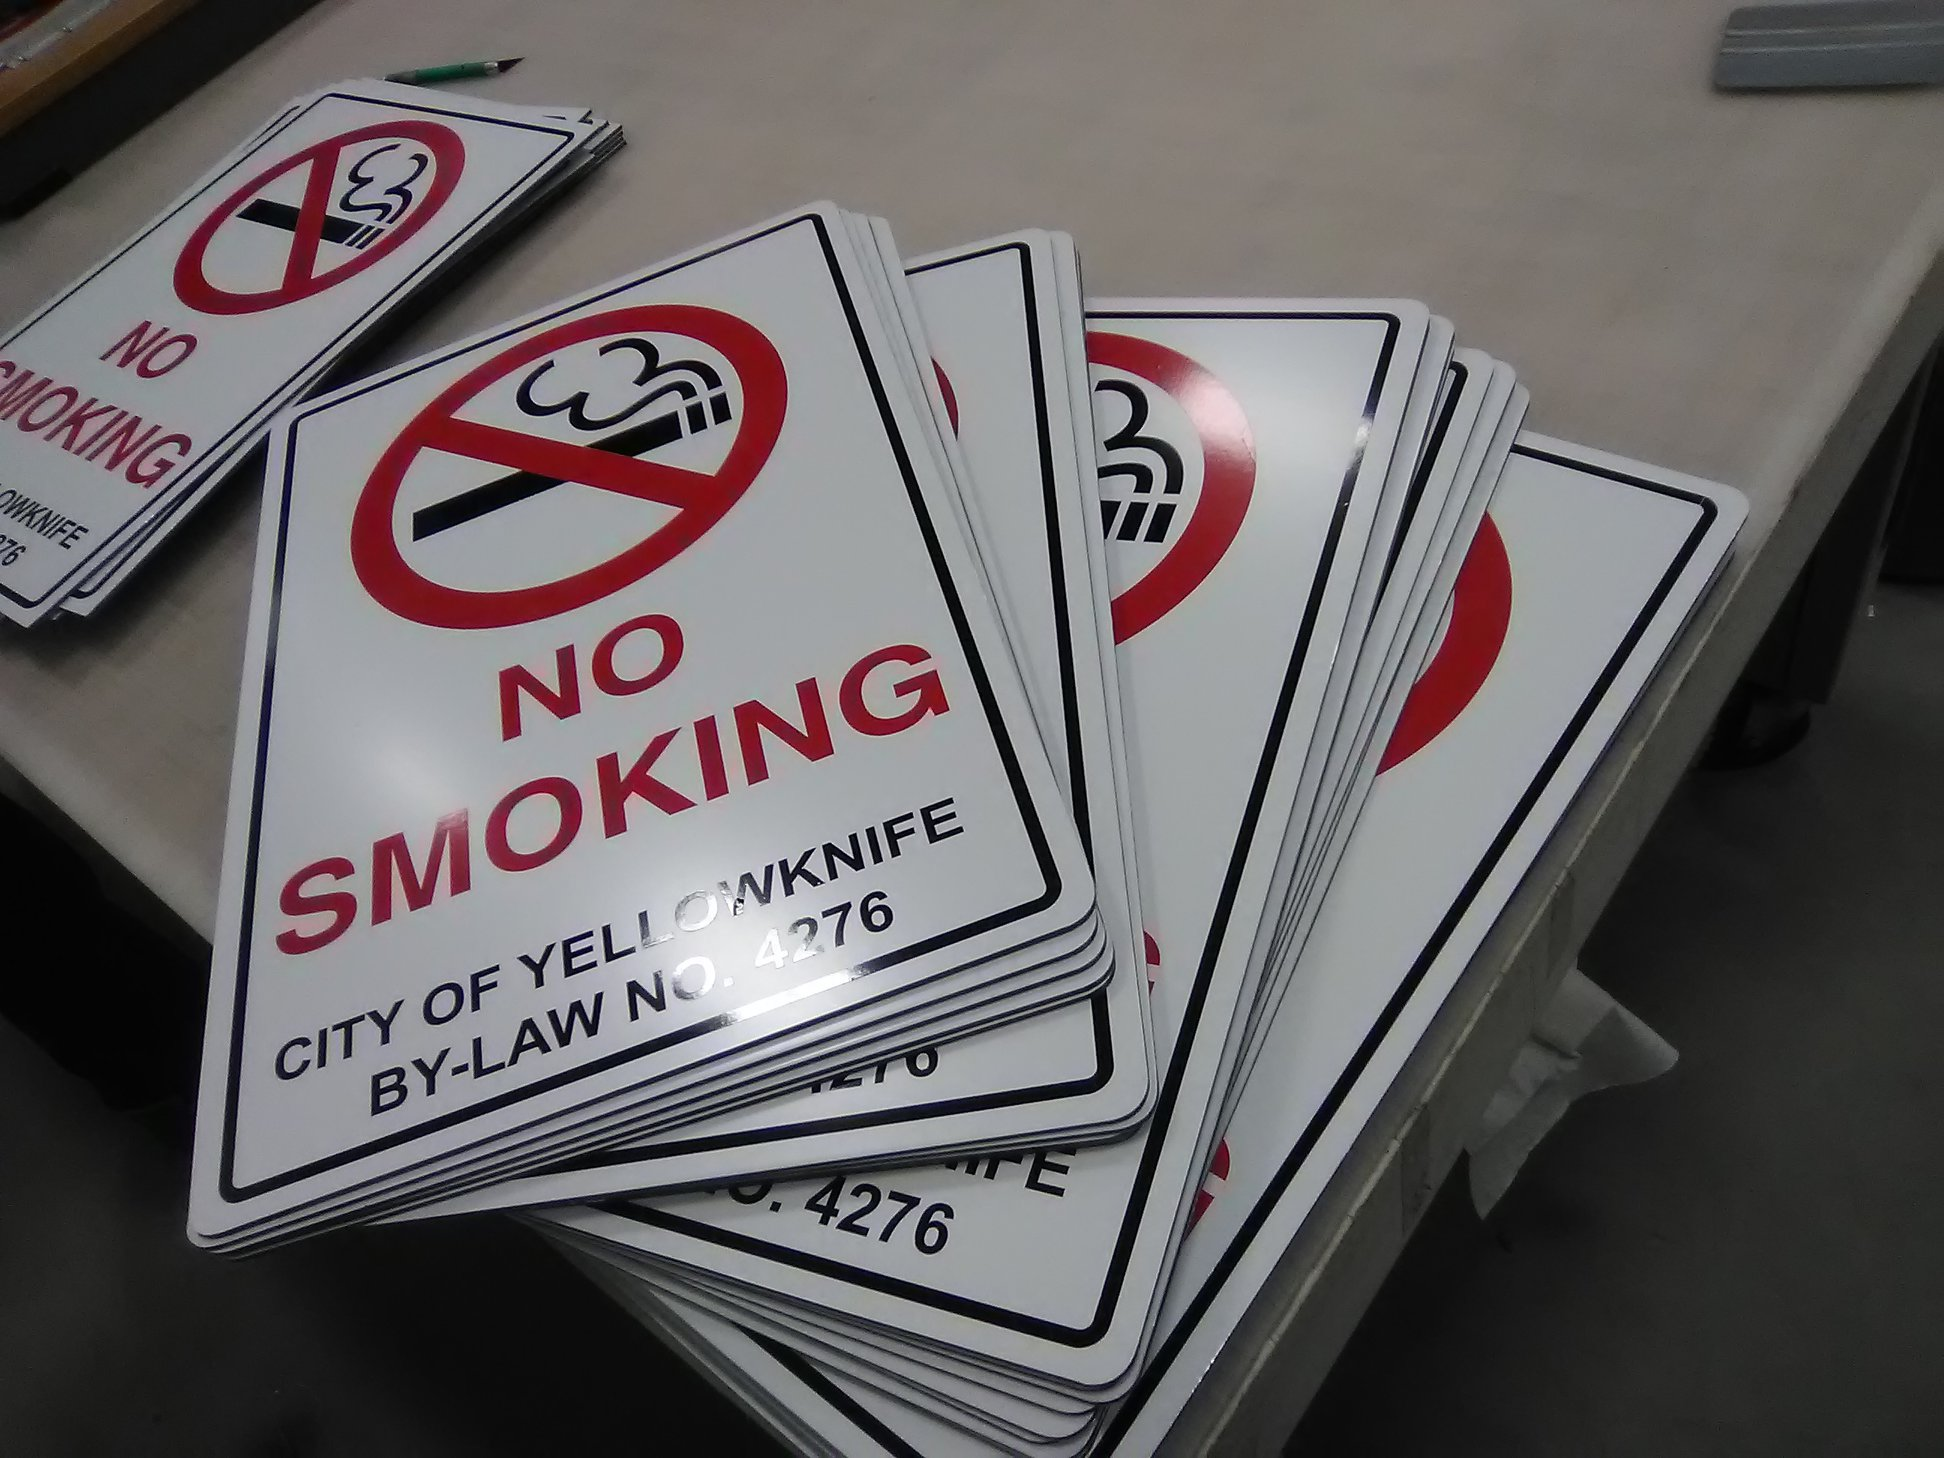 Exterior Signage for designated smoking and non-smoking areas